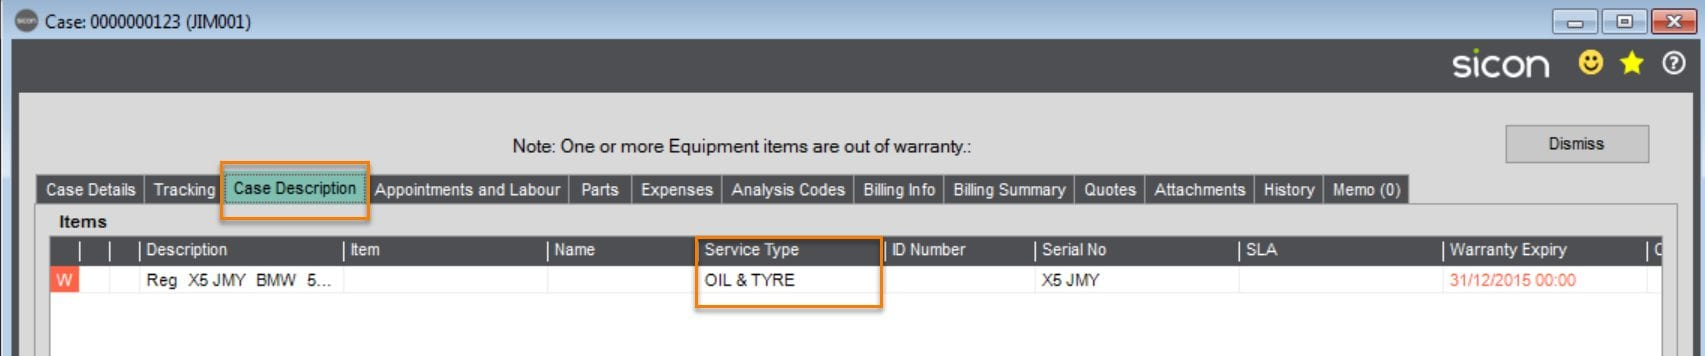 Within the Case Description Tab, it will show the 2 service elements I chose to action out of the possible 4